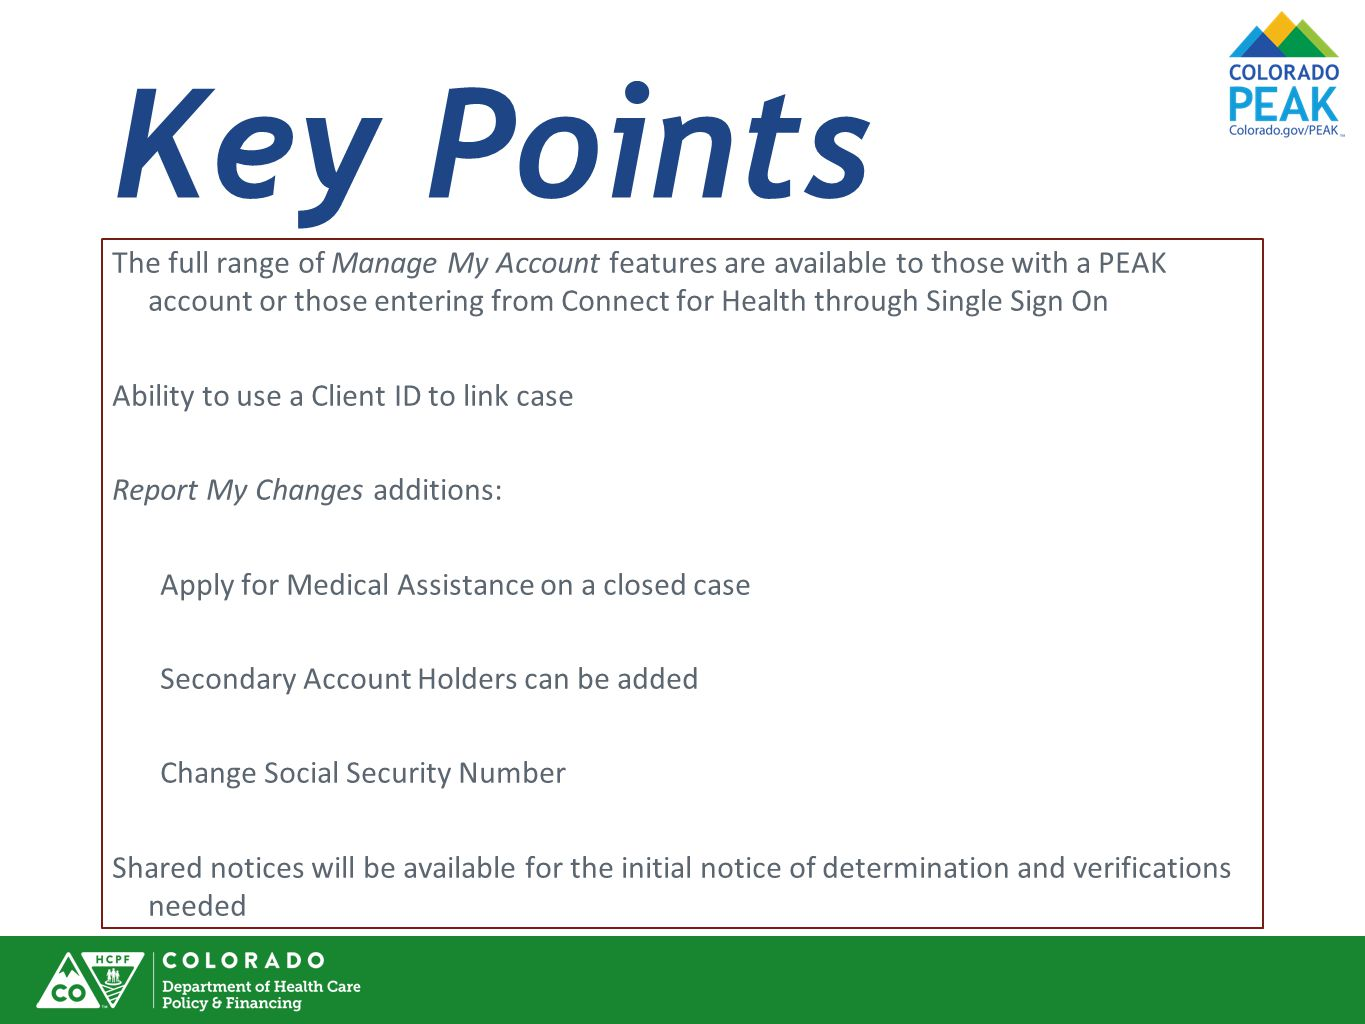 Key Points The full range of Manage My Account features are available to those with a PEAK account or those entering from Connect for Health through Single Sign On Ability to use a Client ID to link case Report My Changes additions: Apply for Medical Assistance on a closed case Secondary Account Holders can be added Change Social Security Number Shared notices will be available for the initial notice of determination and verifications needed